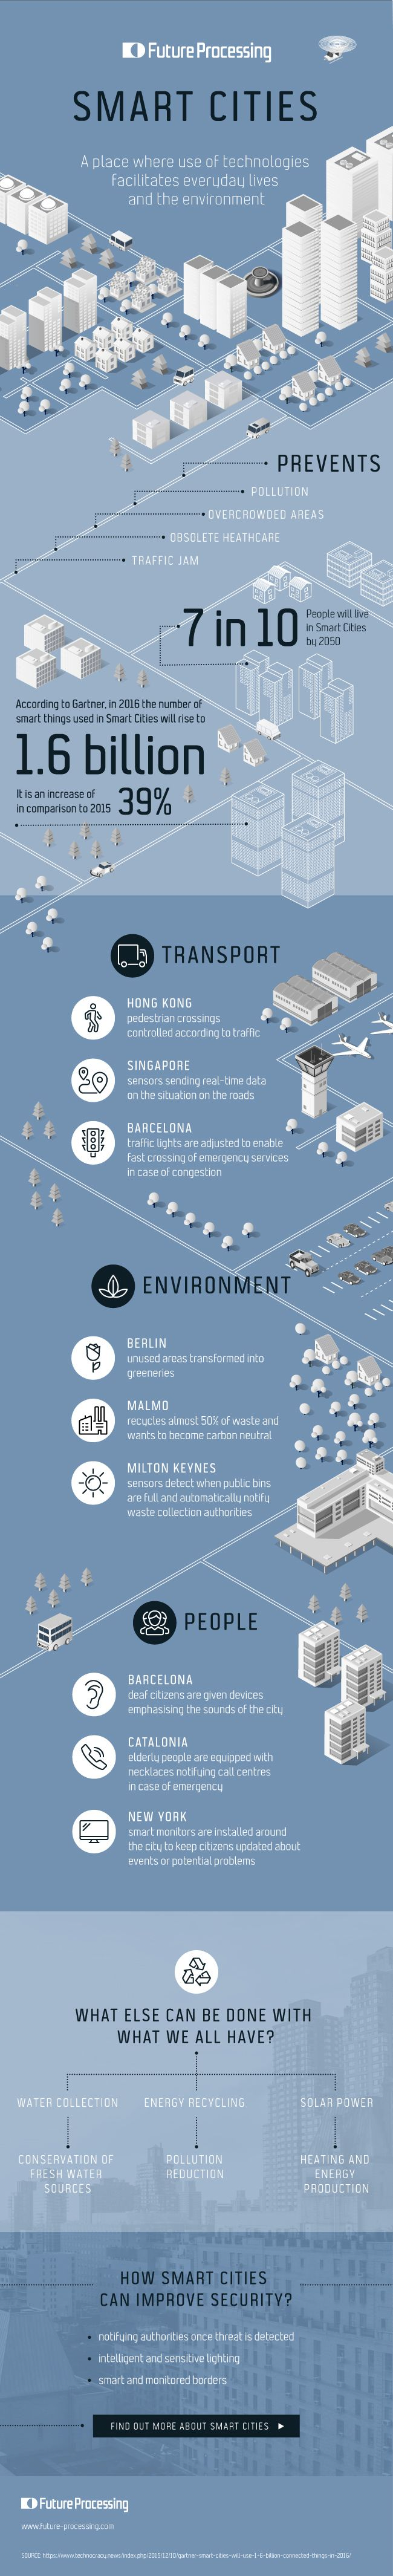 What is a smart city? How will smart technologies improve our urban life? Todays graphic has those answers and more.